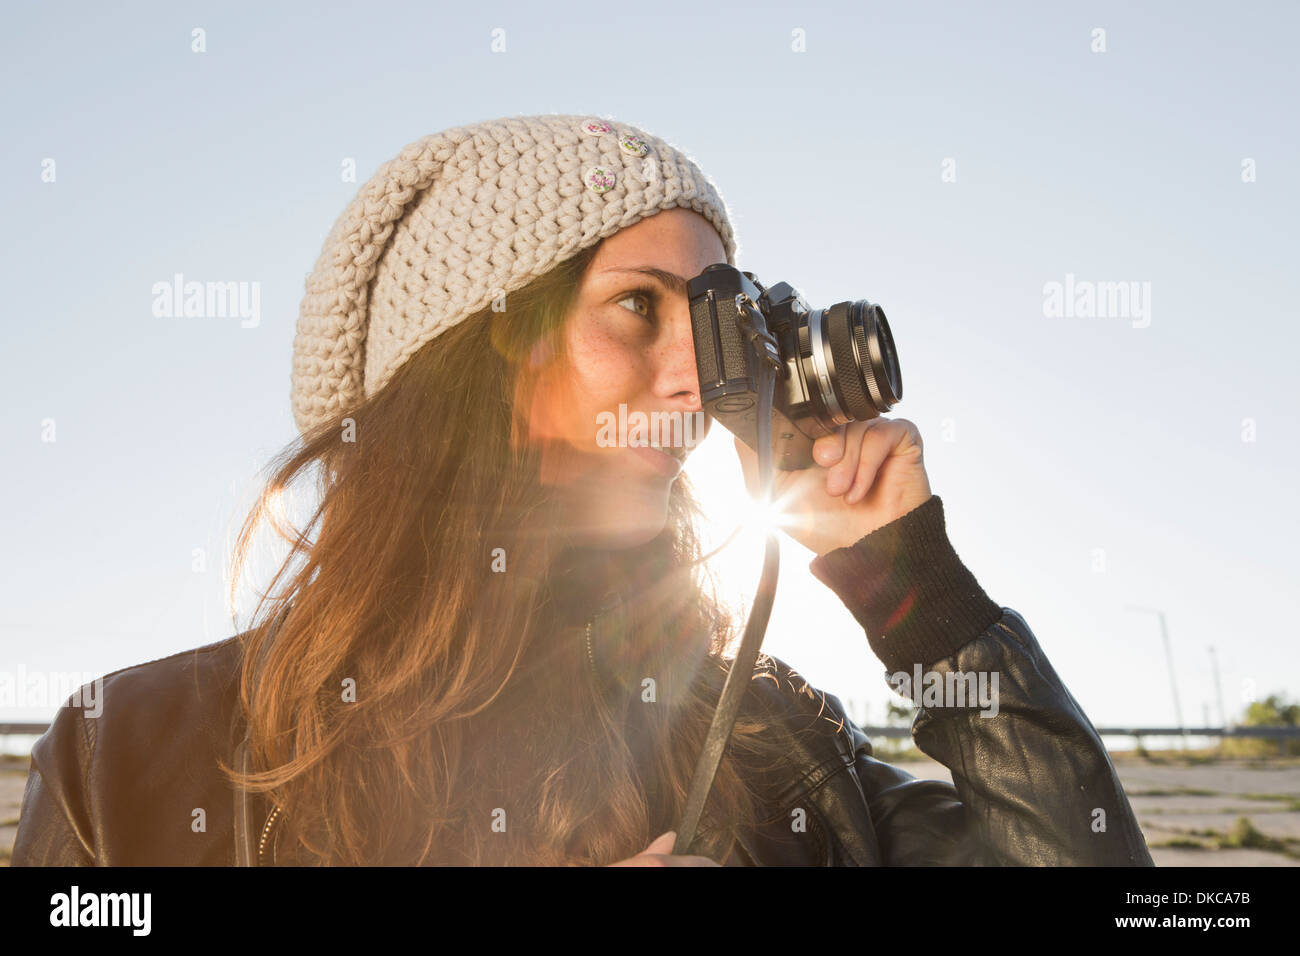 Portrait of young woman using slr camera - Stock Image